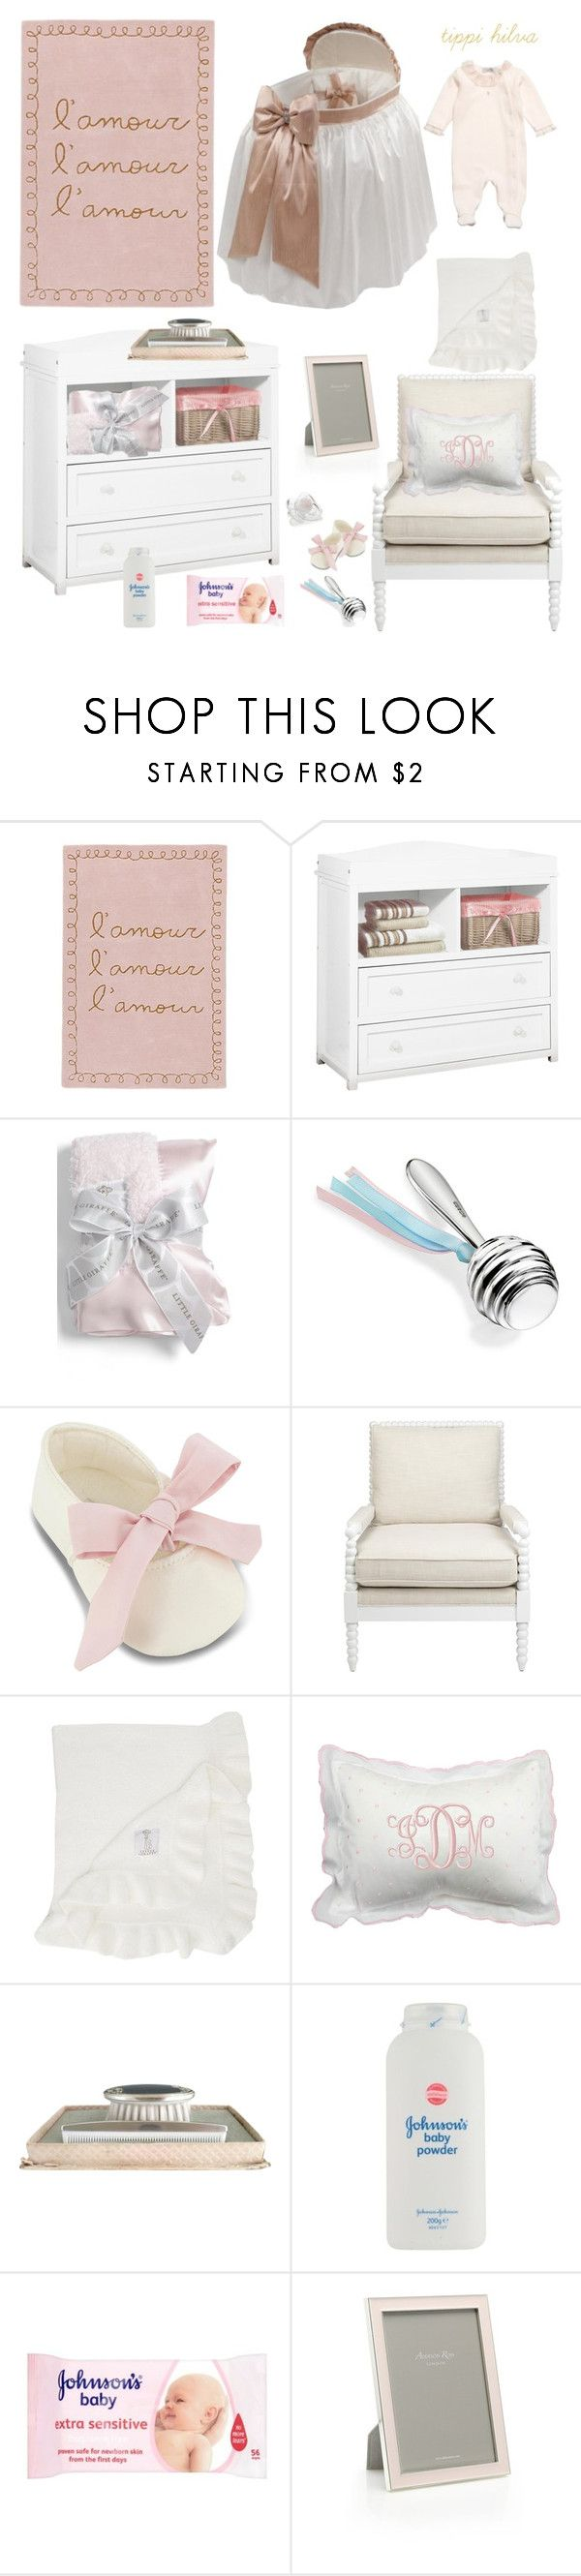 """Quite Antique Nursery"" by tippi-h ❤ liked on Polyvore featuring interior, interiors, interior design, home, home decor, interior decorating, Little Giraffe, Il Gufo and Addison Ross"